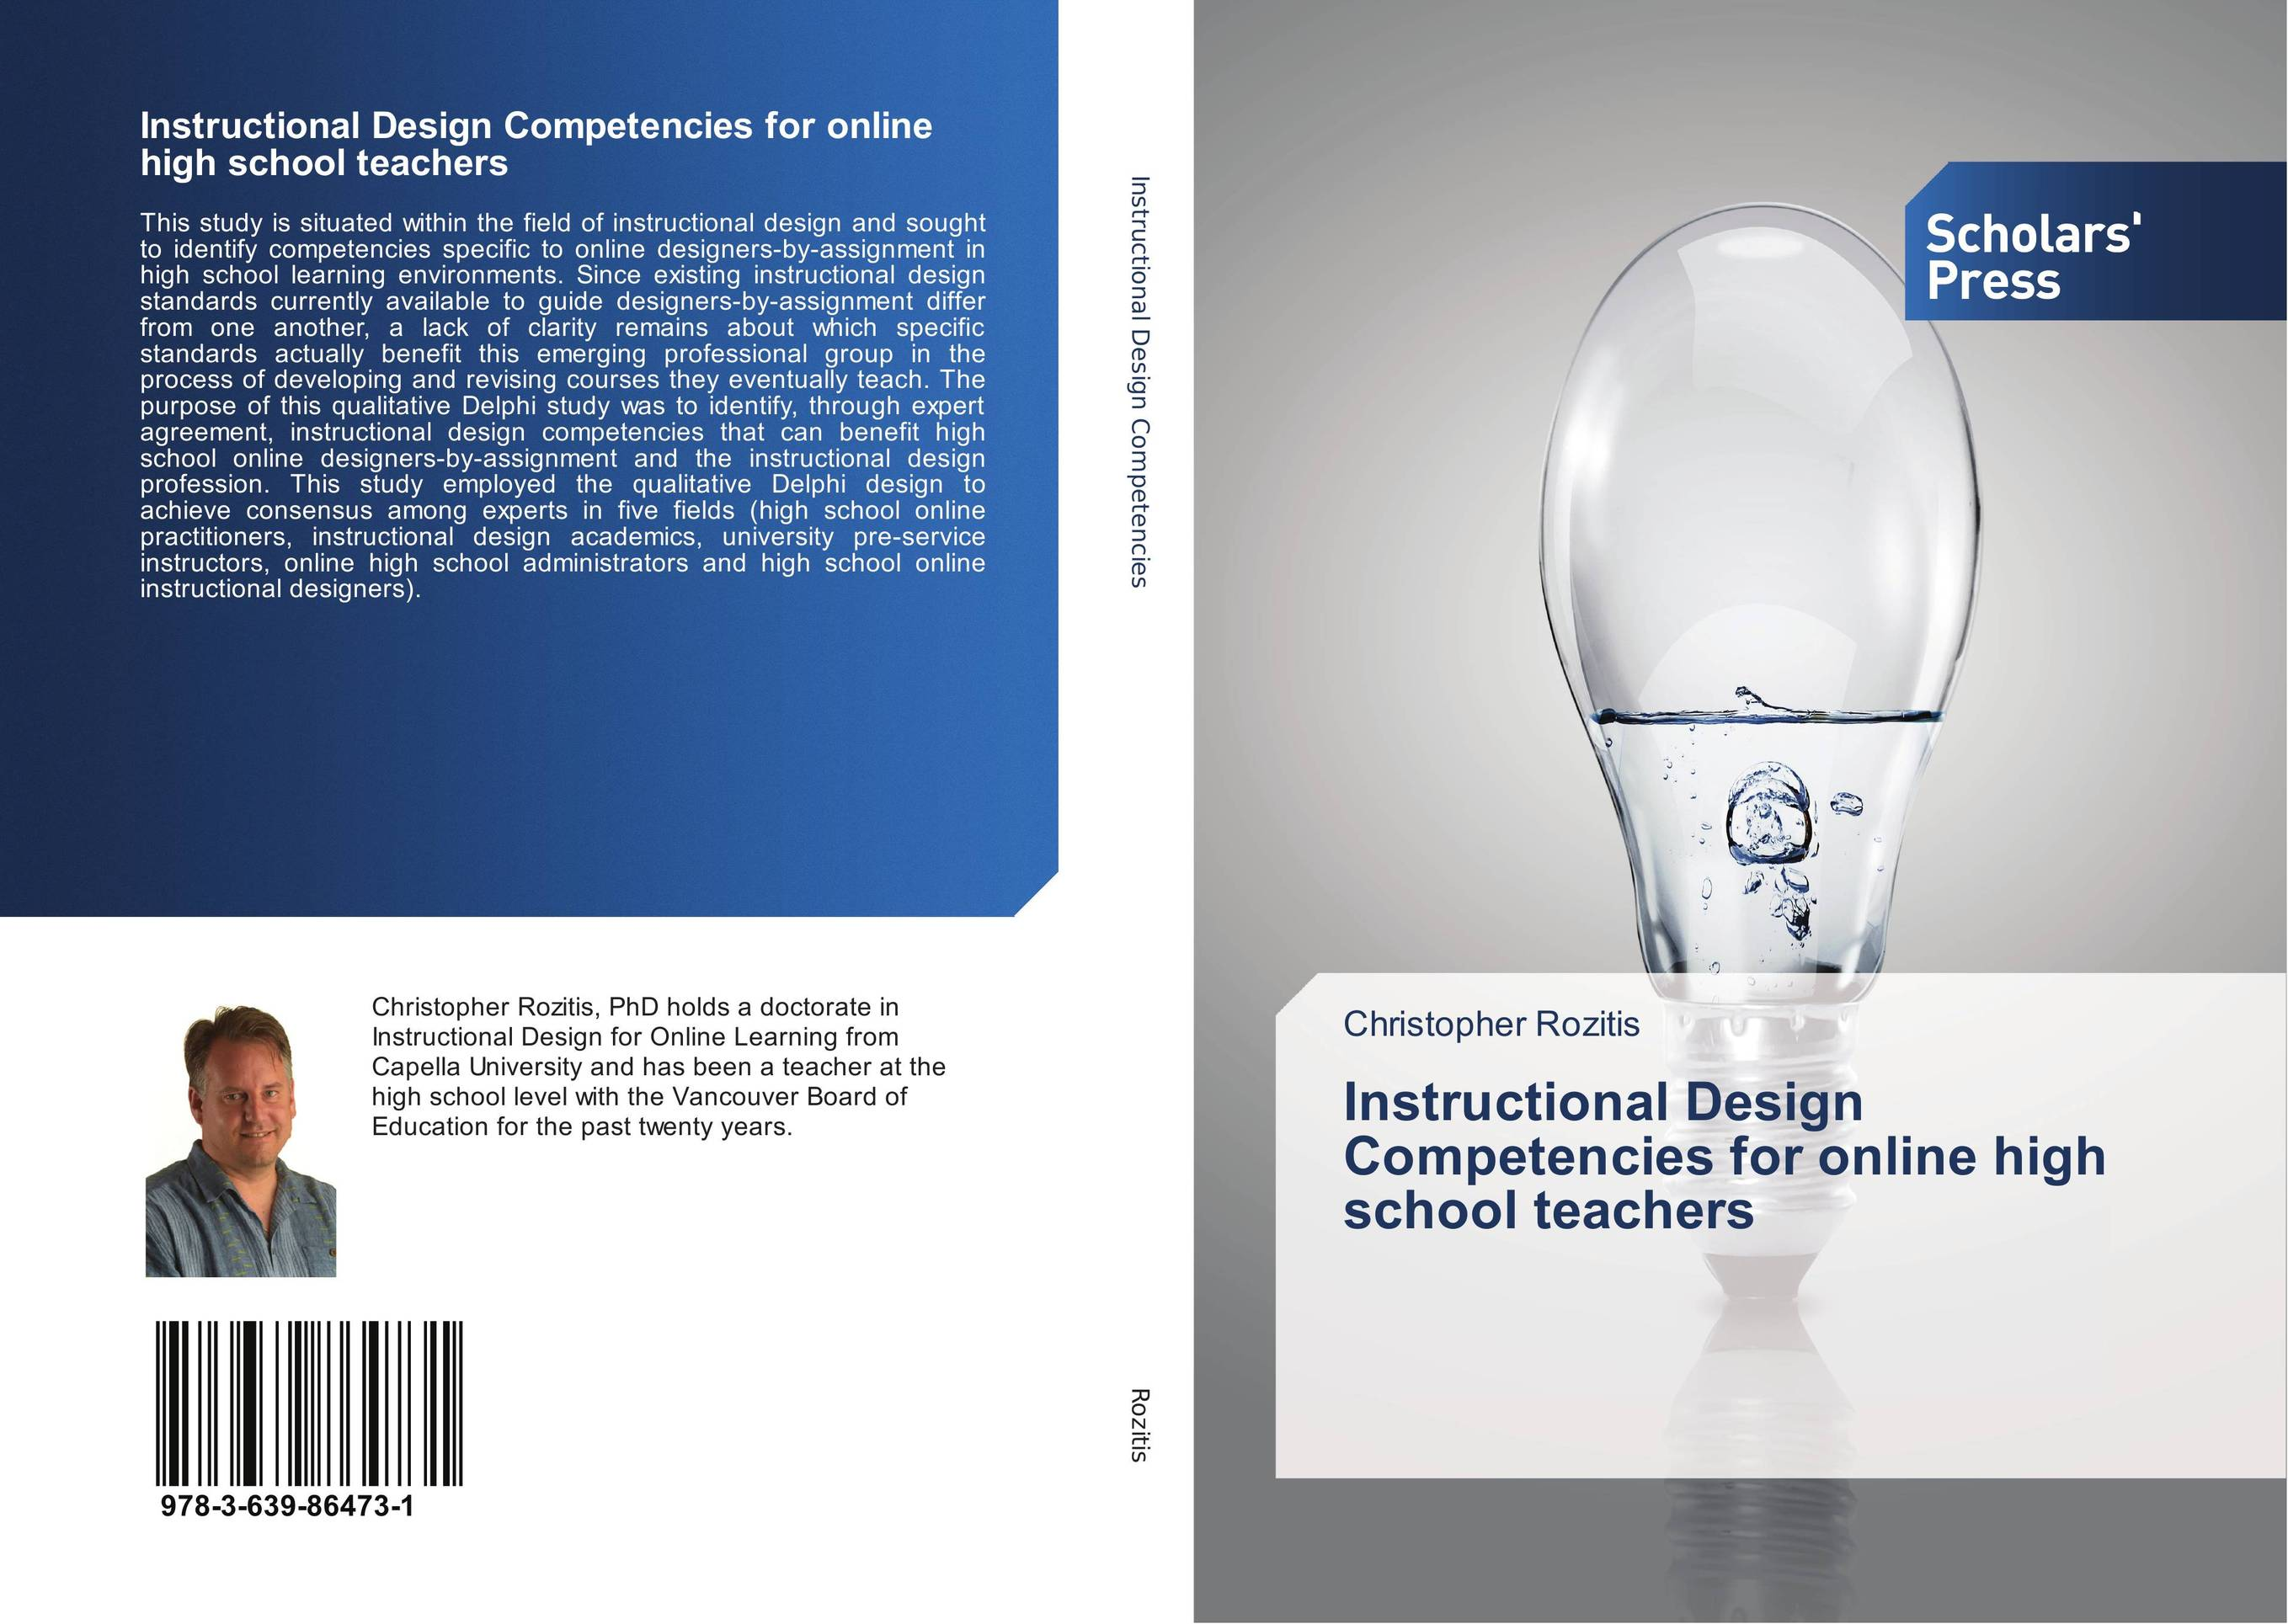 Instructional Design Competencies for online high school teachers